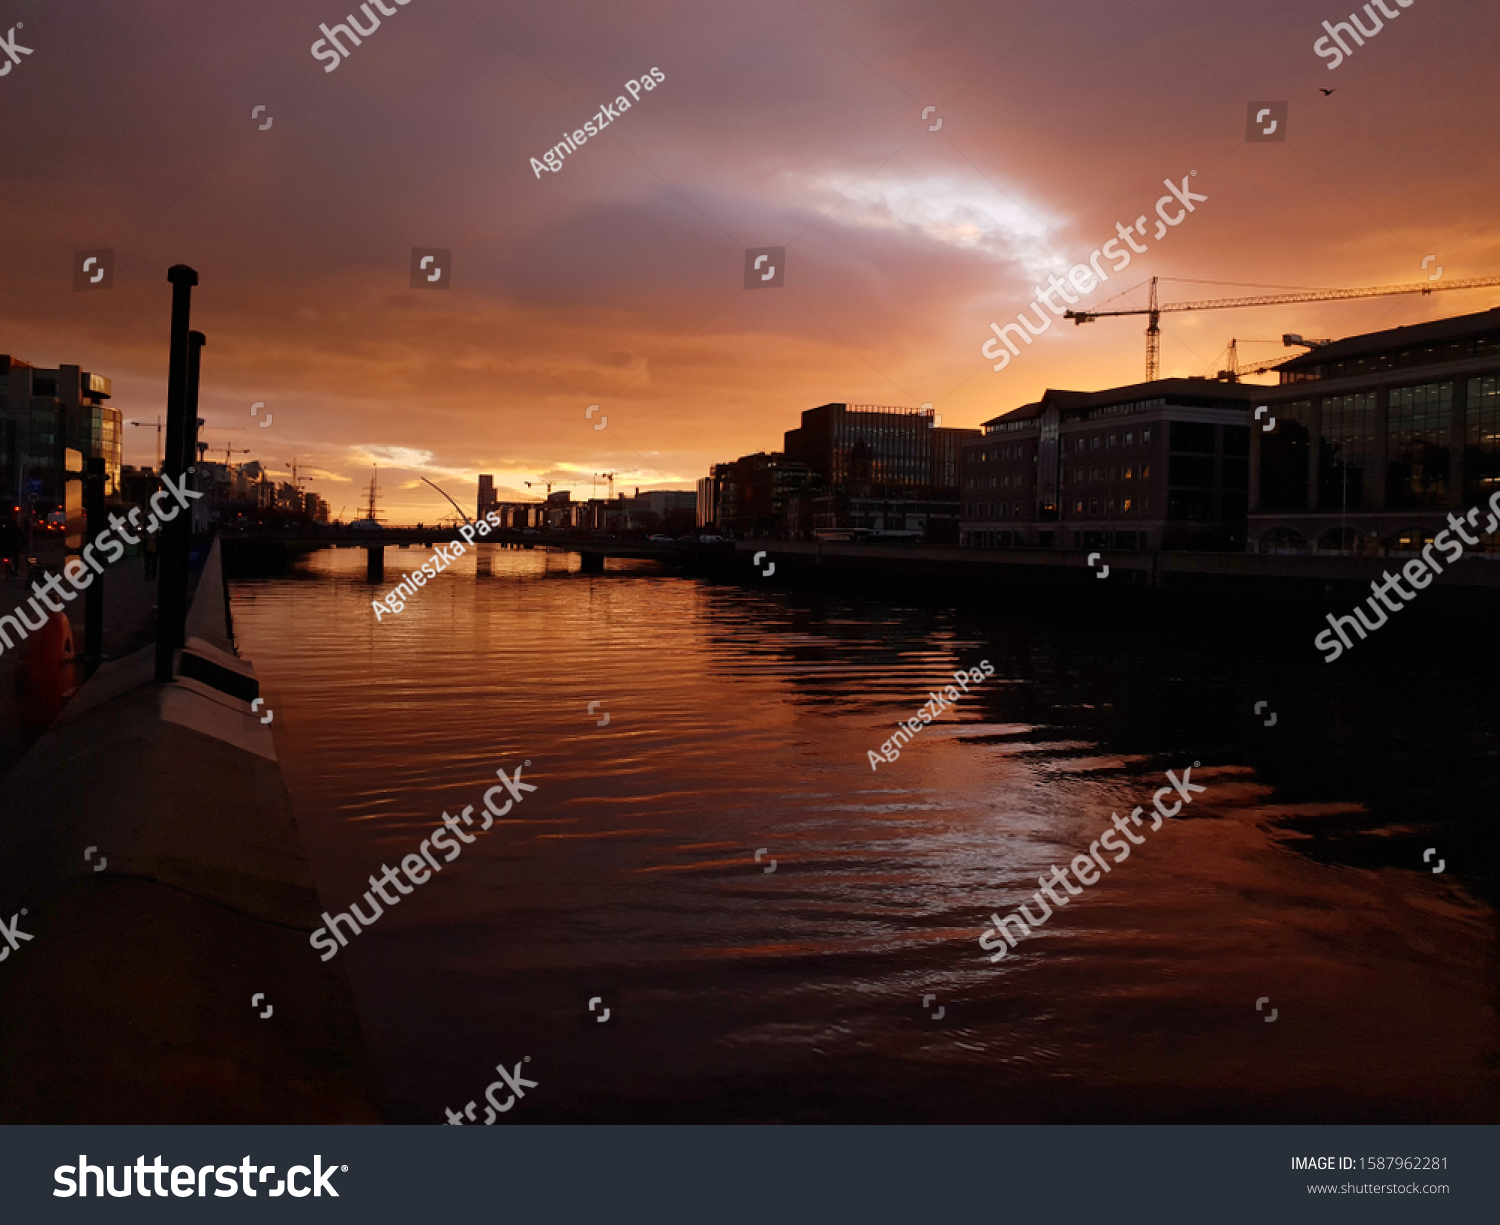 DUBLIN, IRELAND - DECEMBER 4, 2019: Sunrise over the River Liffey in Dublin. View from IFSC area, towards Dublin Port.